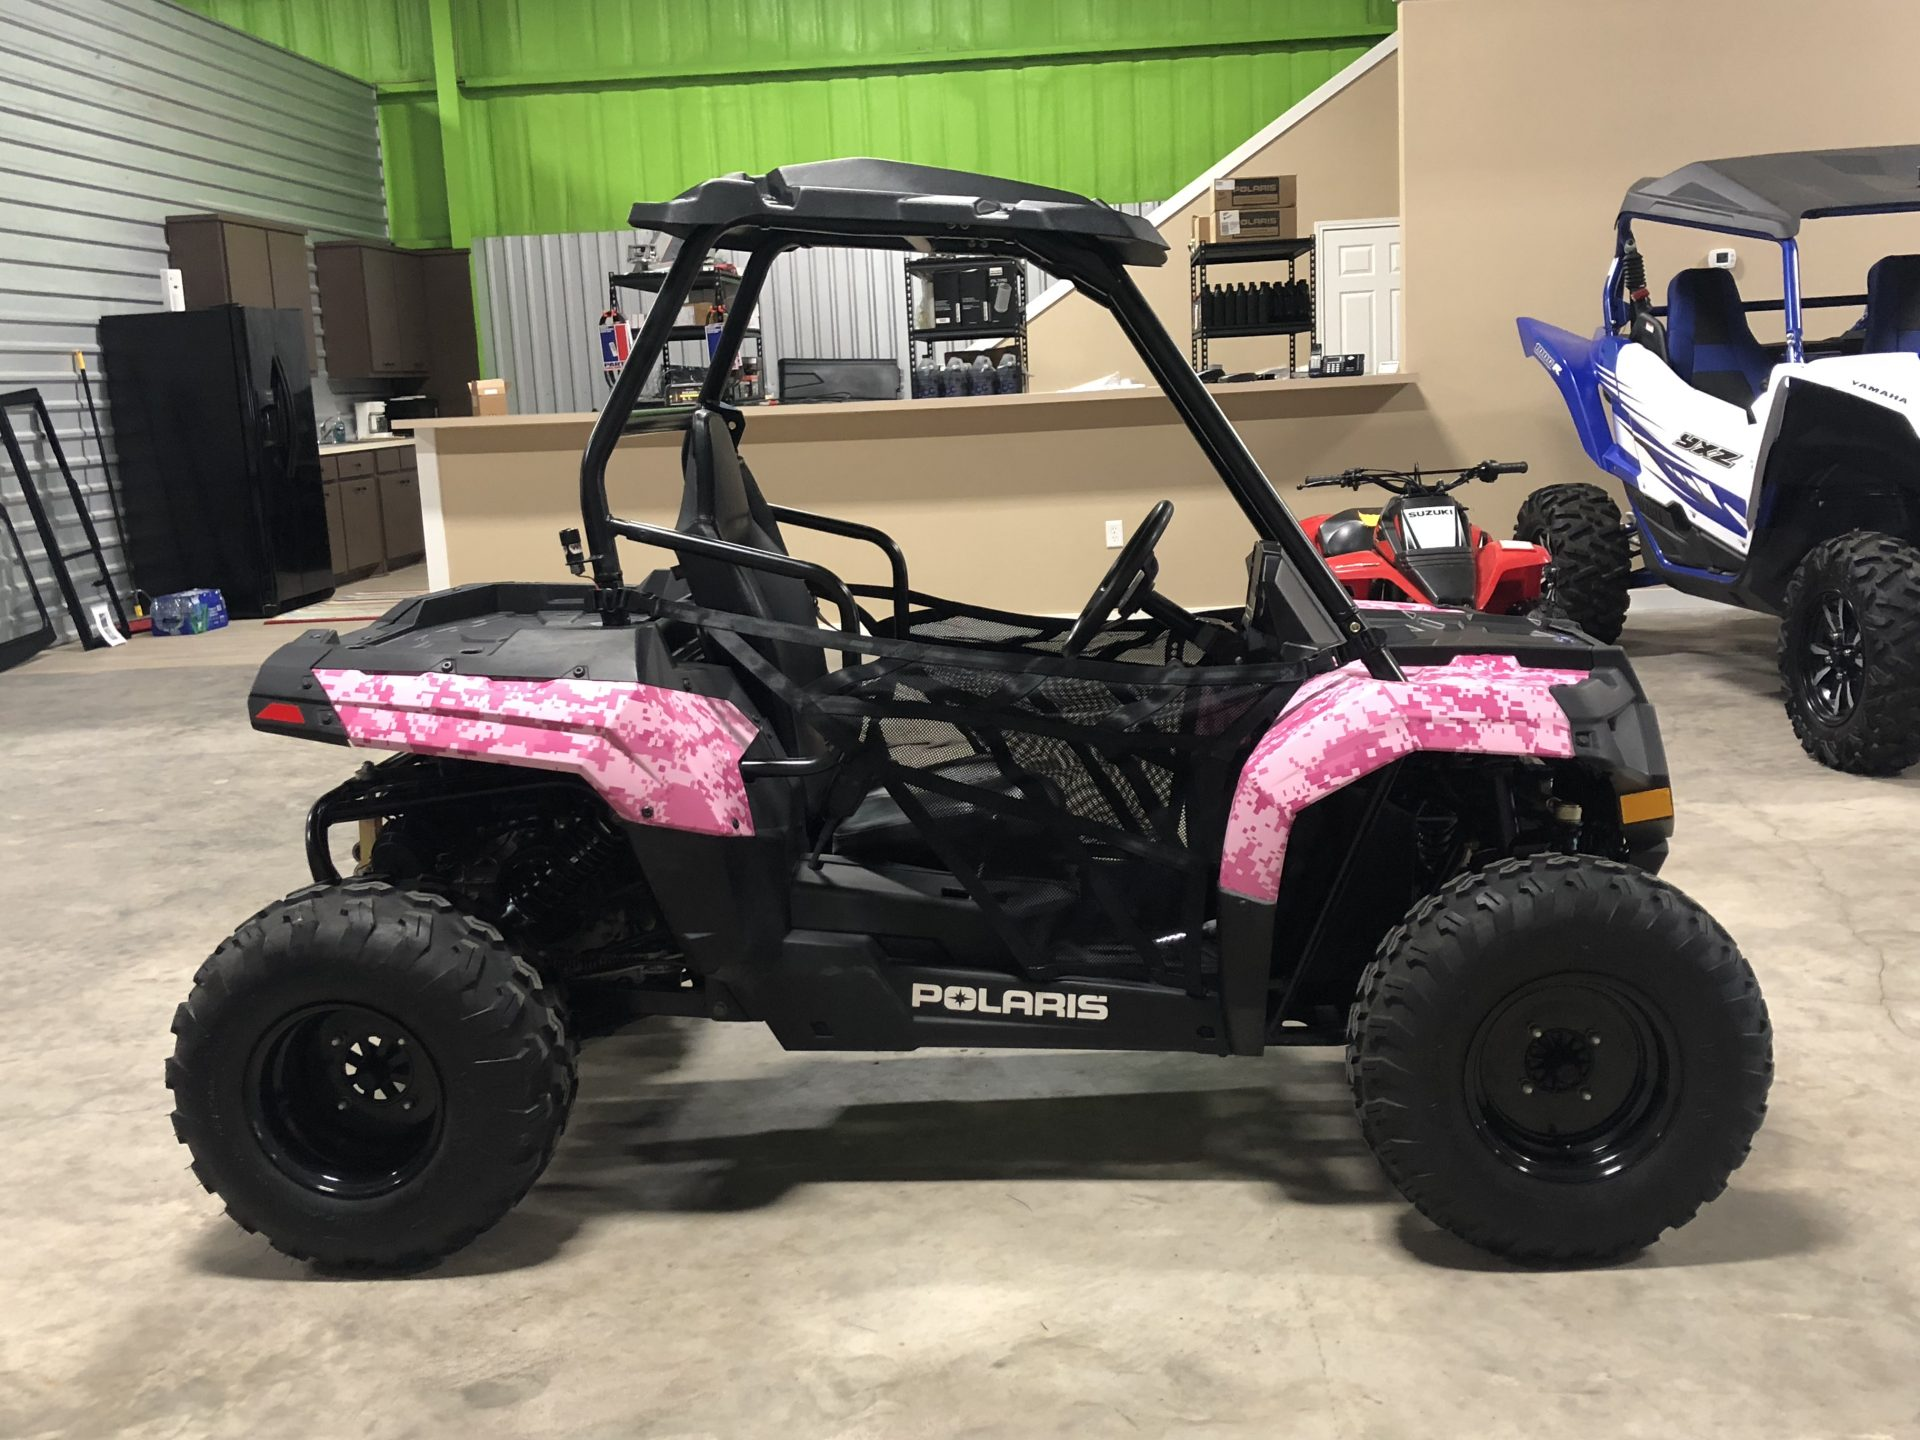 2017 Polaris Ace 150 Image